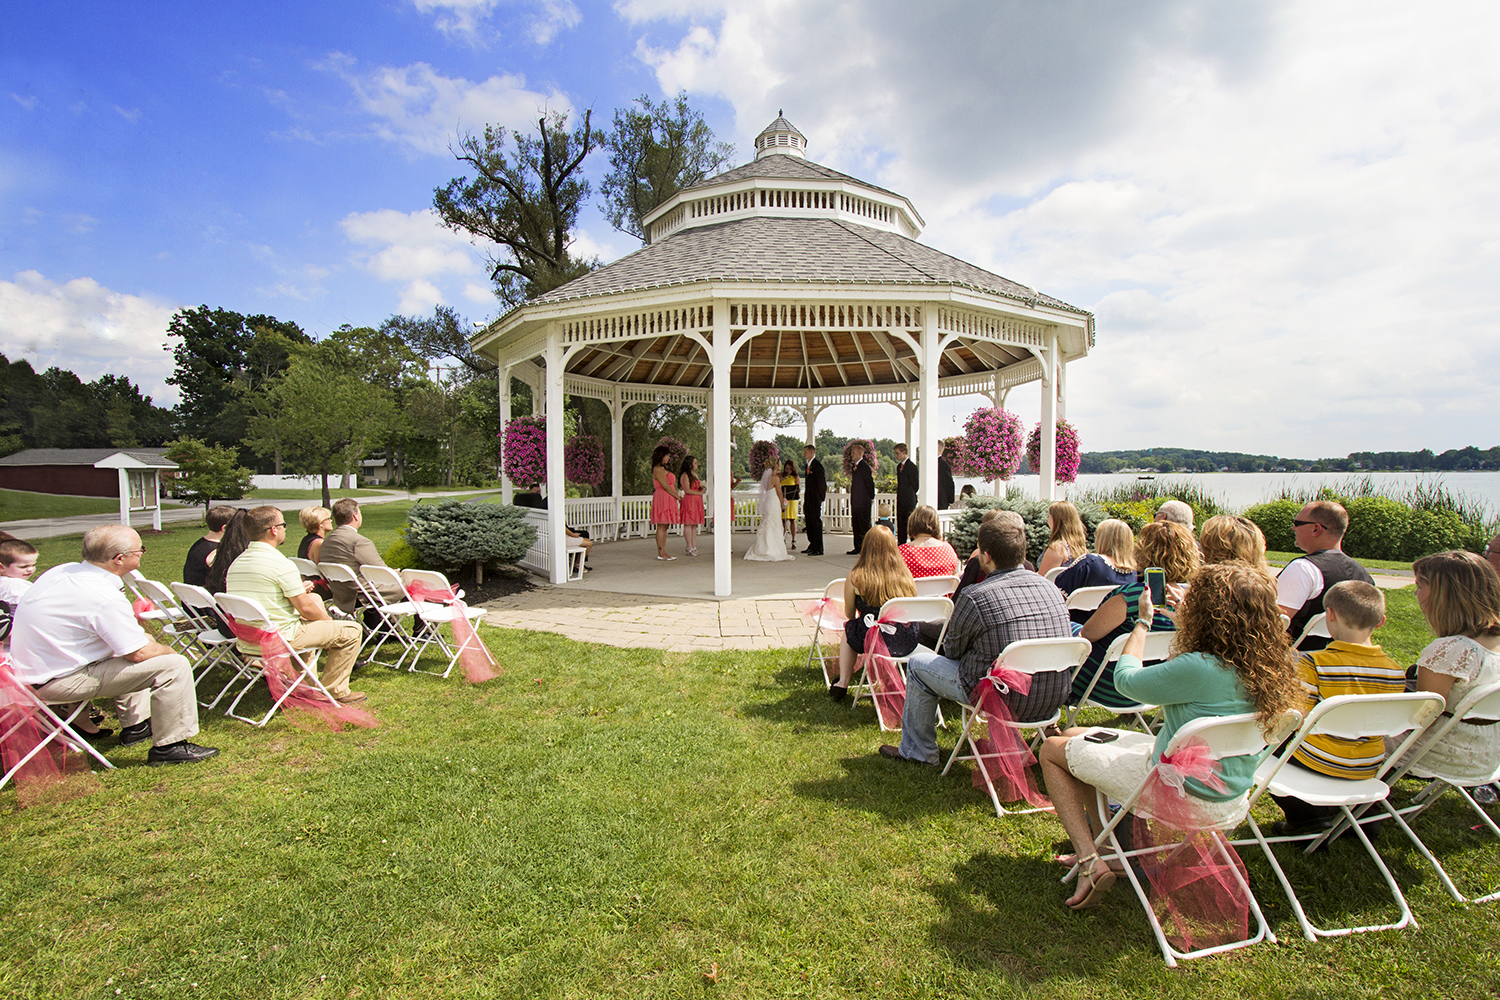 This park had the most beautiful view.  The sky and water were so blue... the gazebo was just perfect for their very personal ceremony.